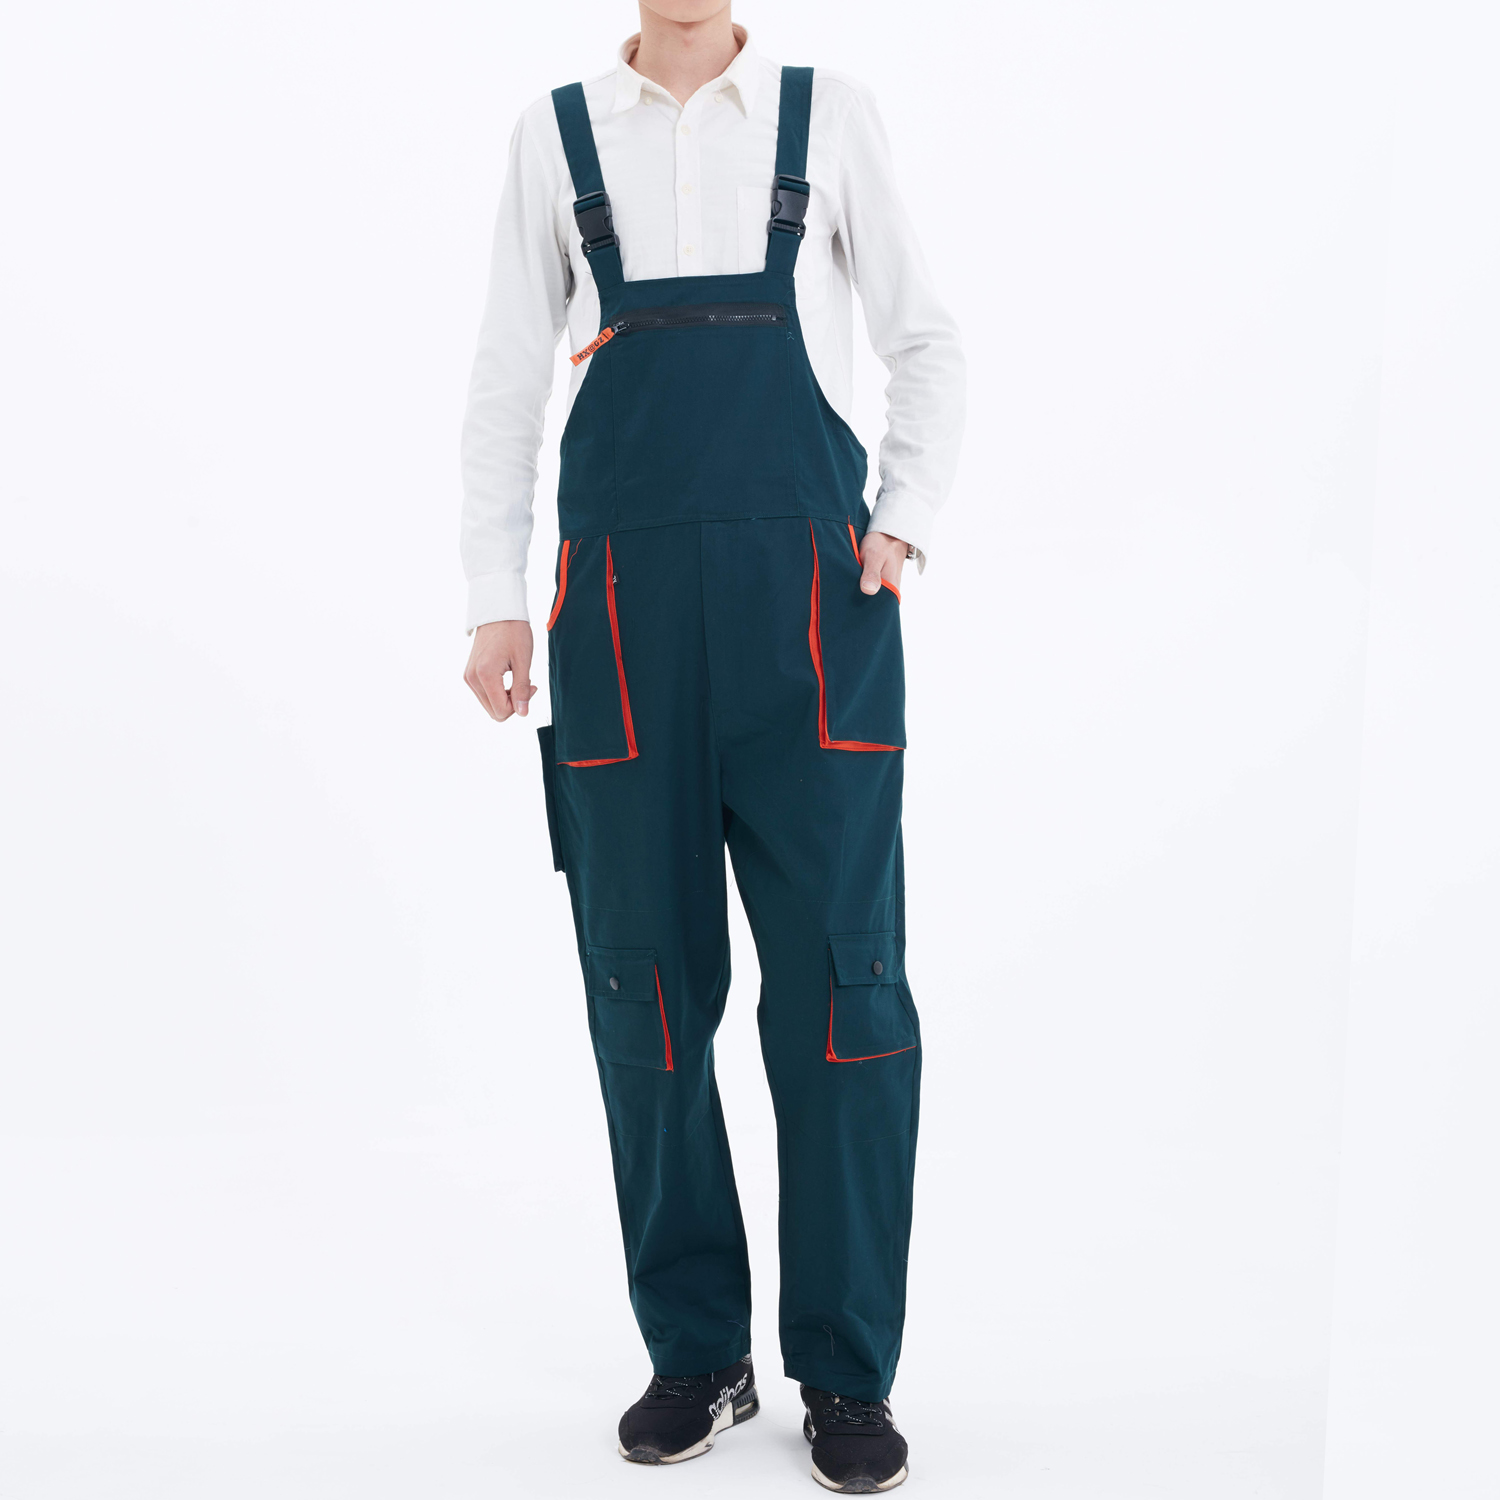 New Men Loose Bib Pants Straight Overalls Heavy Duty Work Trousers Dungarees Knee Pad Side Pockets Cago Pants Male Work Pant